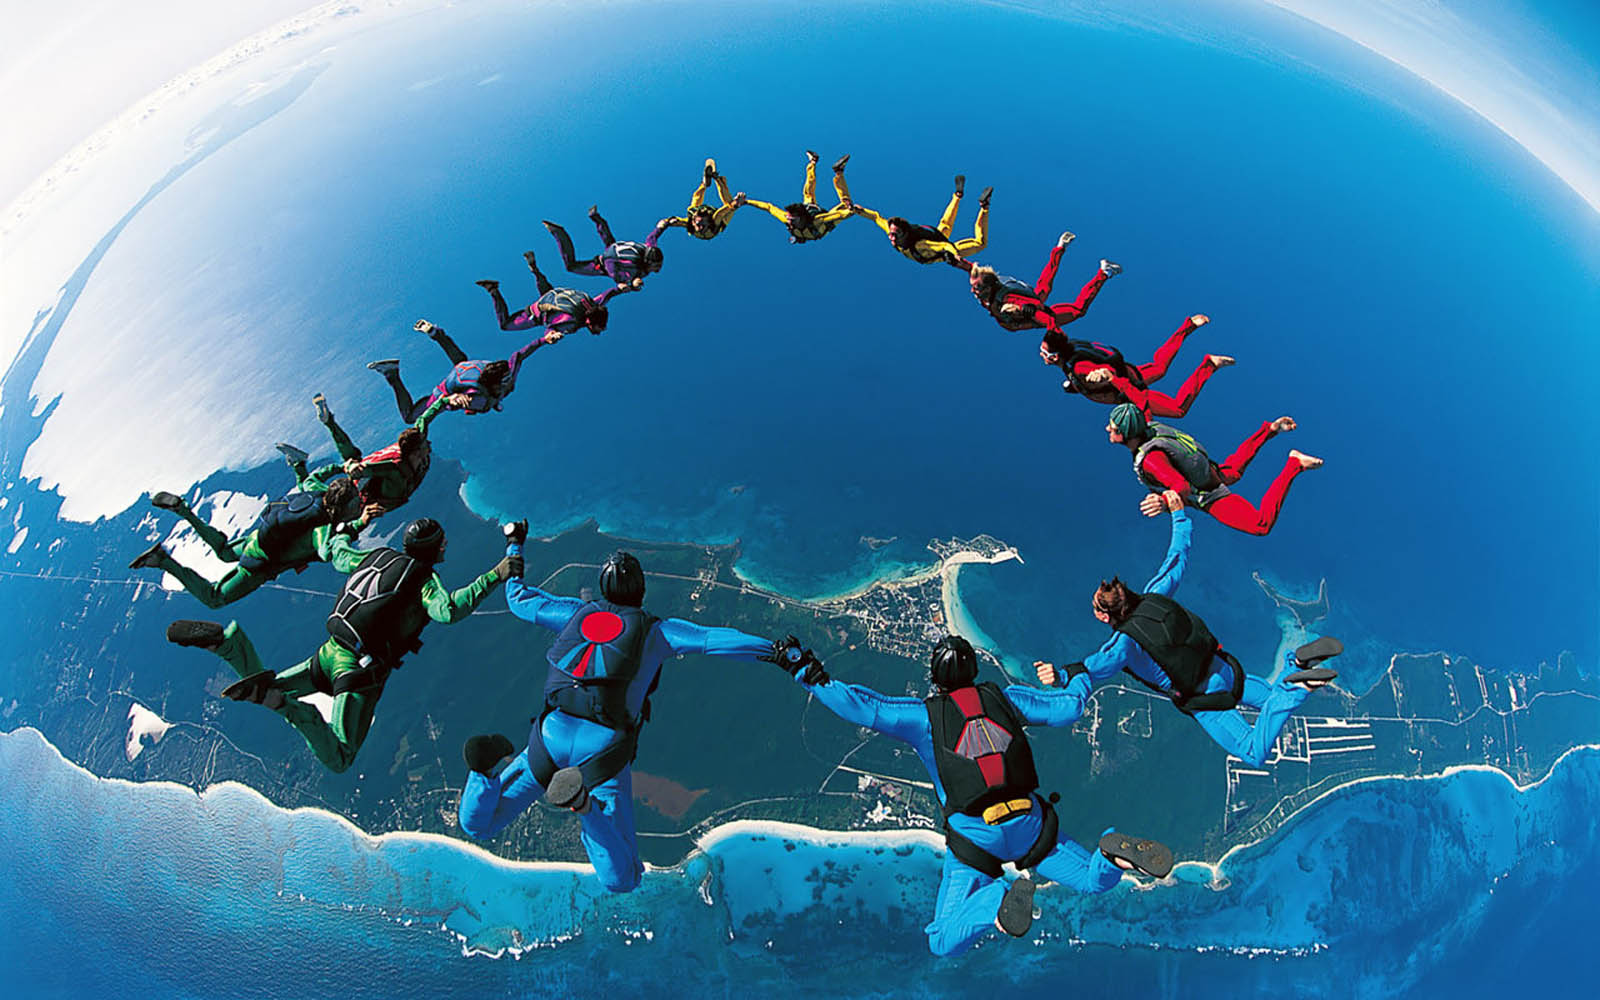 Southern California's Premier Skydiving Destination